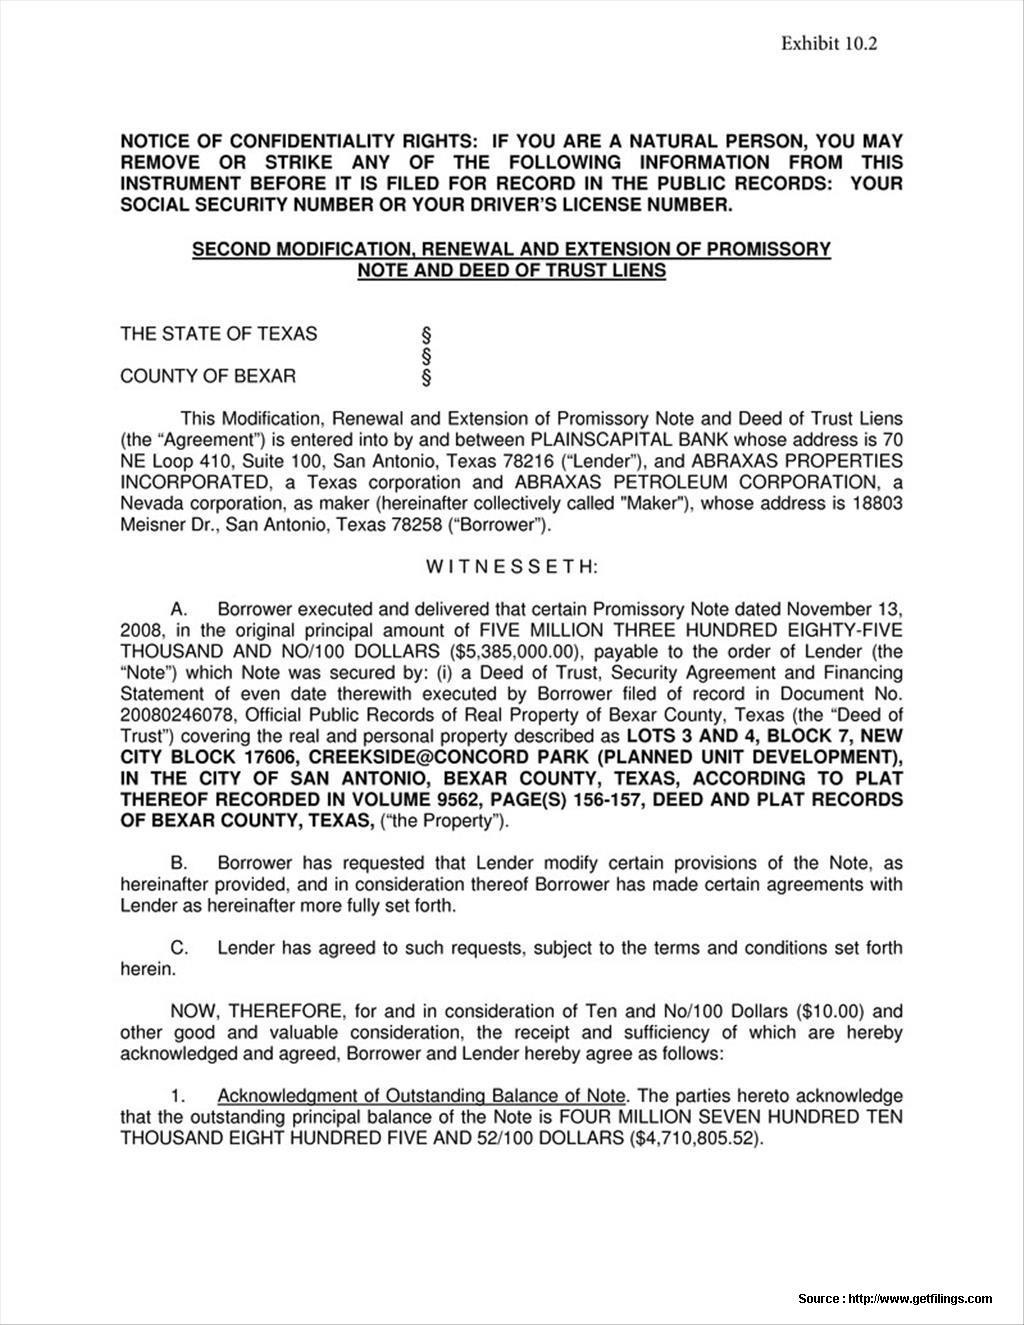 Promissory Note Modification Agreement Form